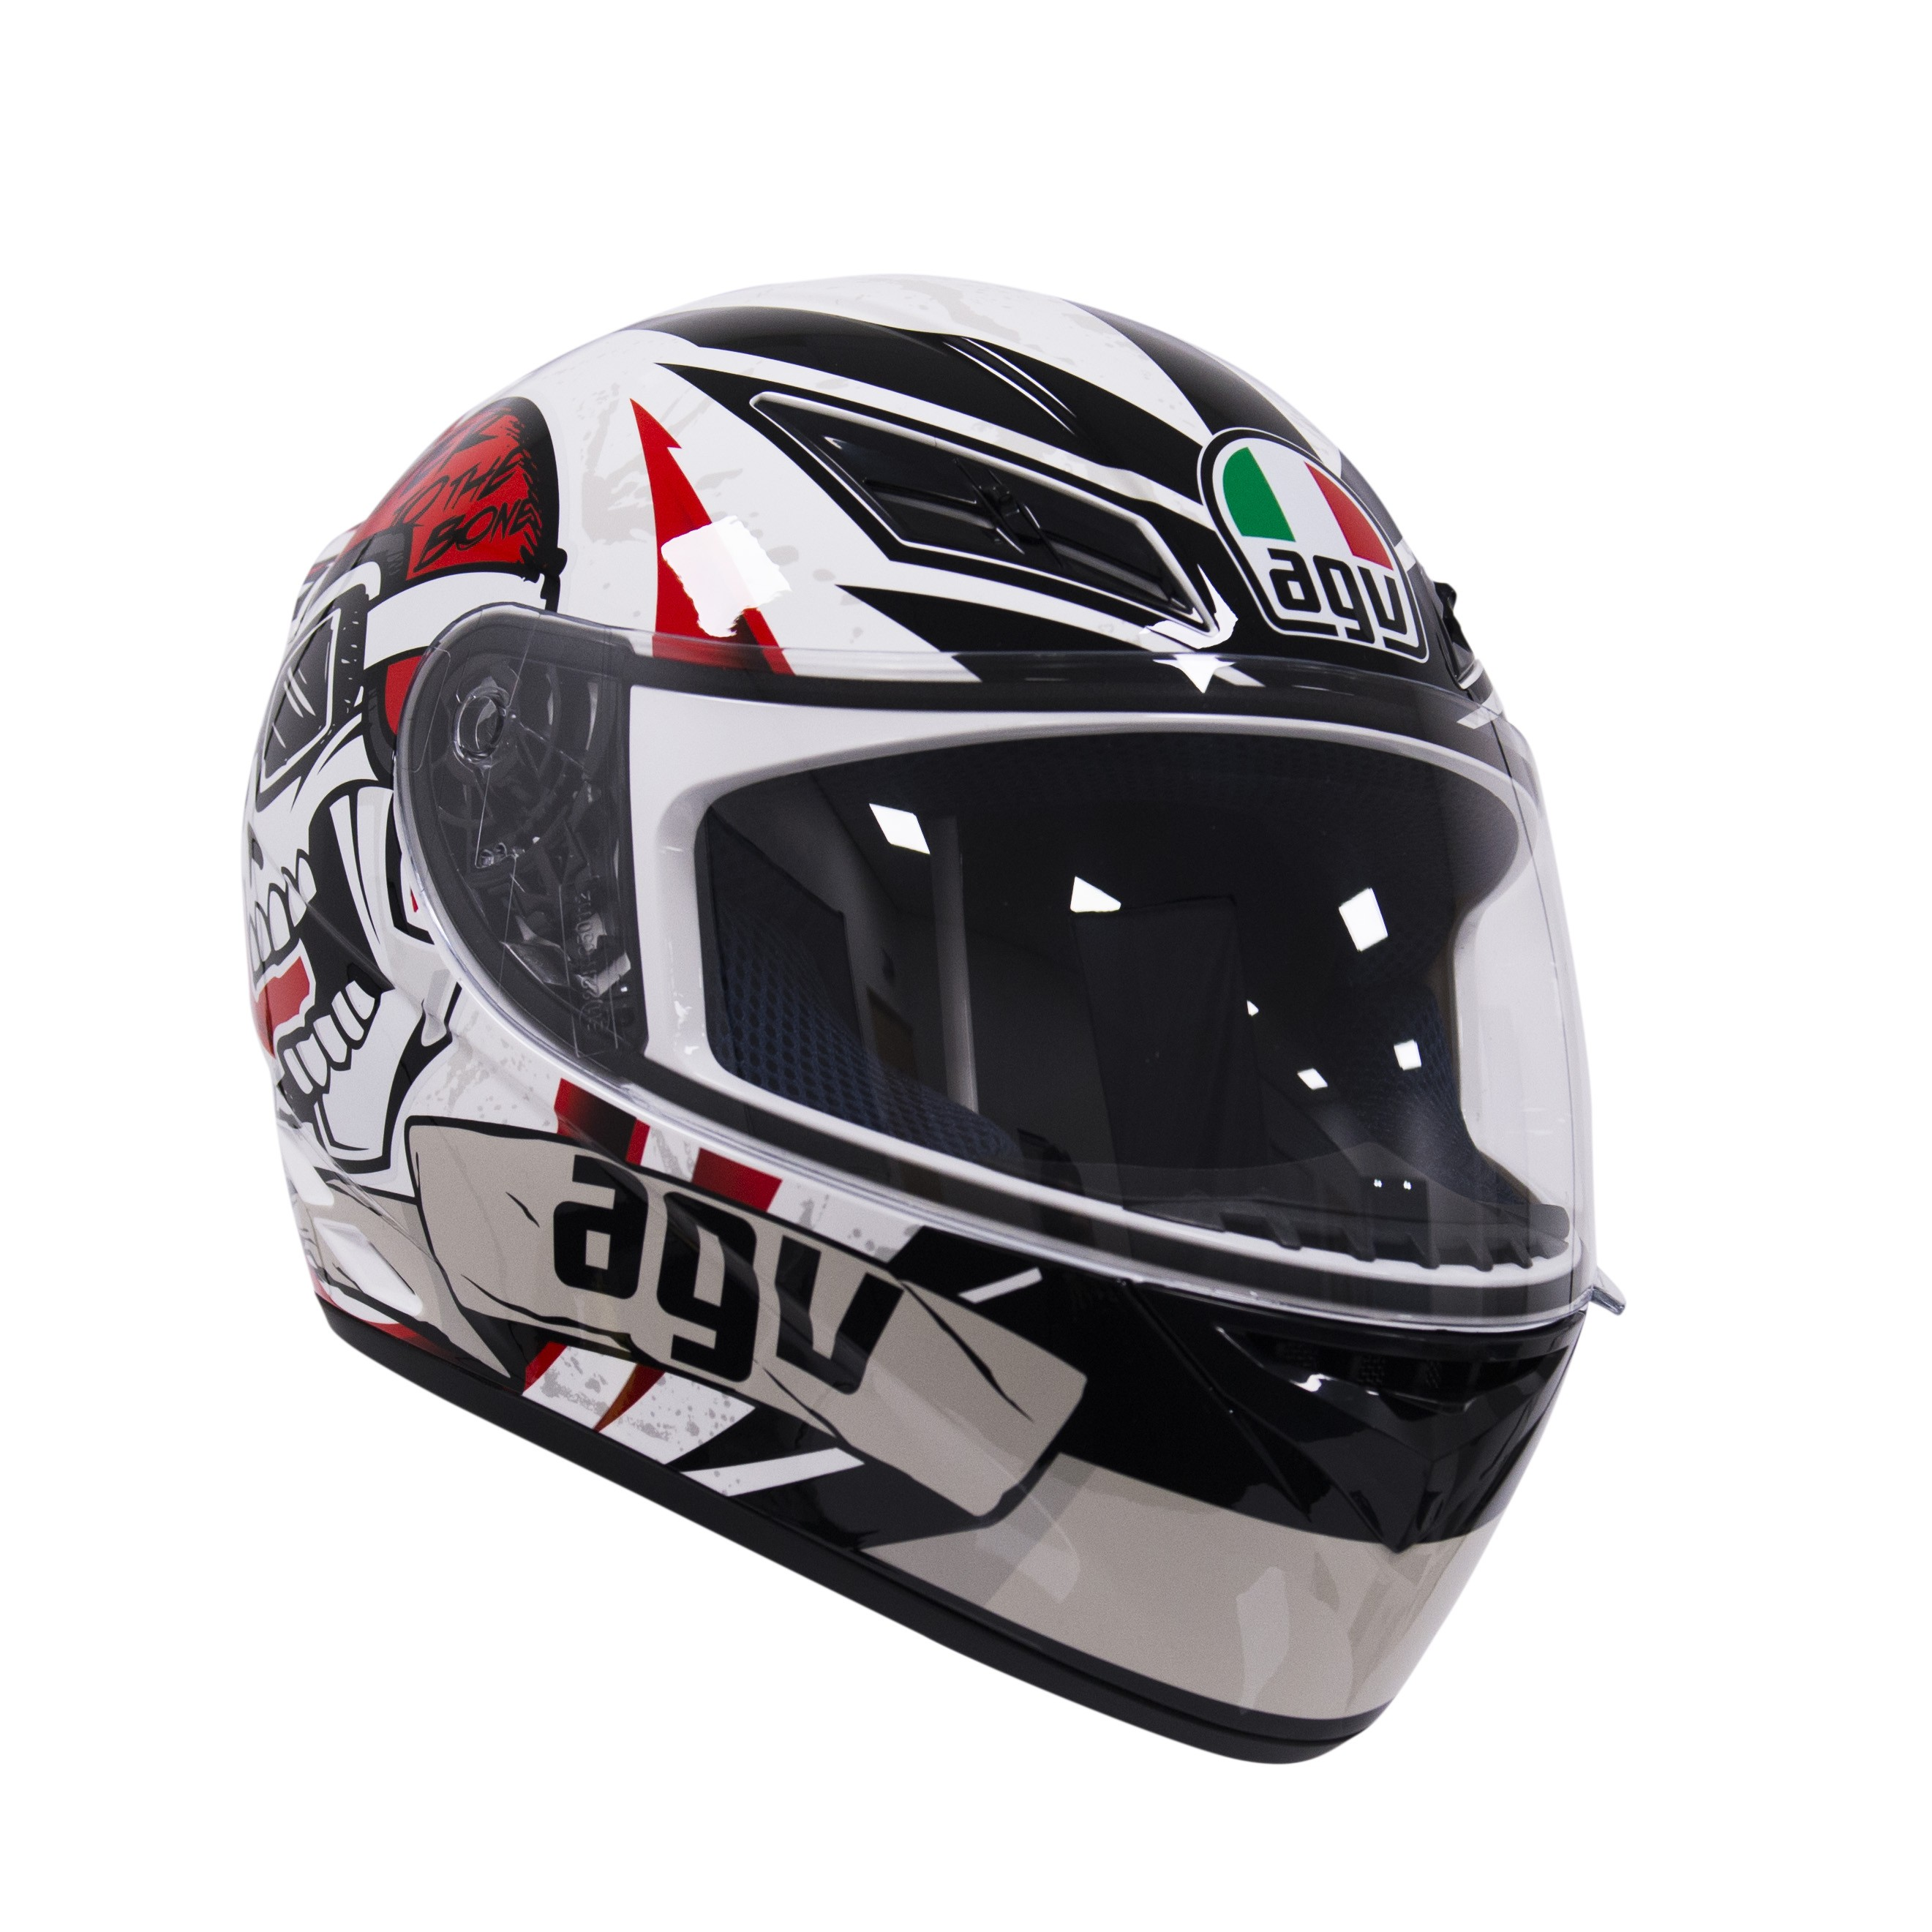 AGV K3 Rider to the Bone